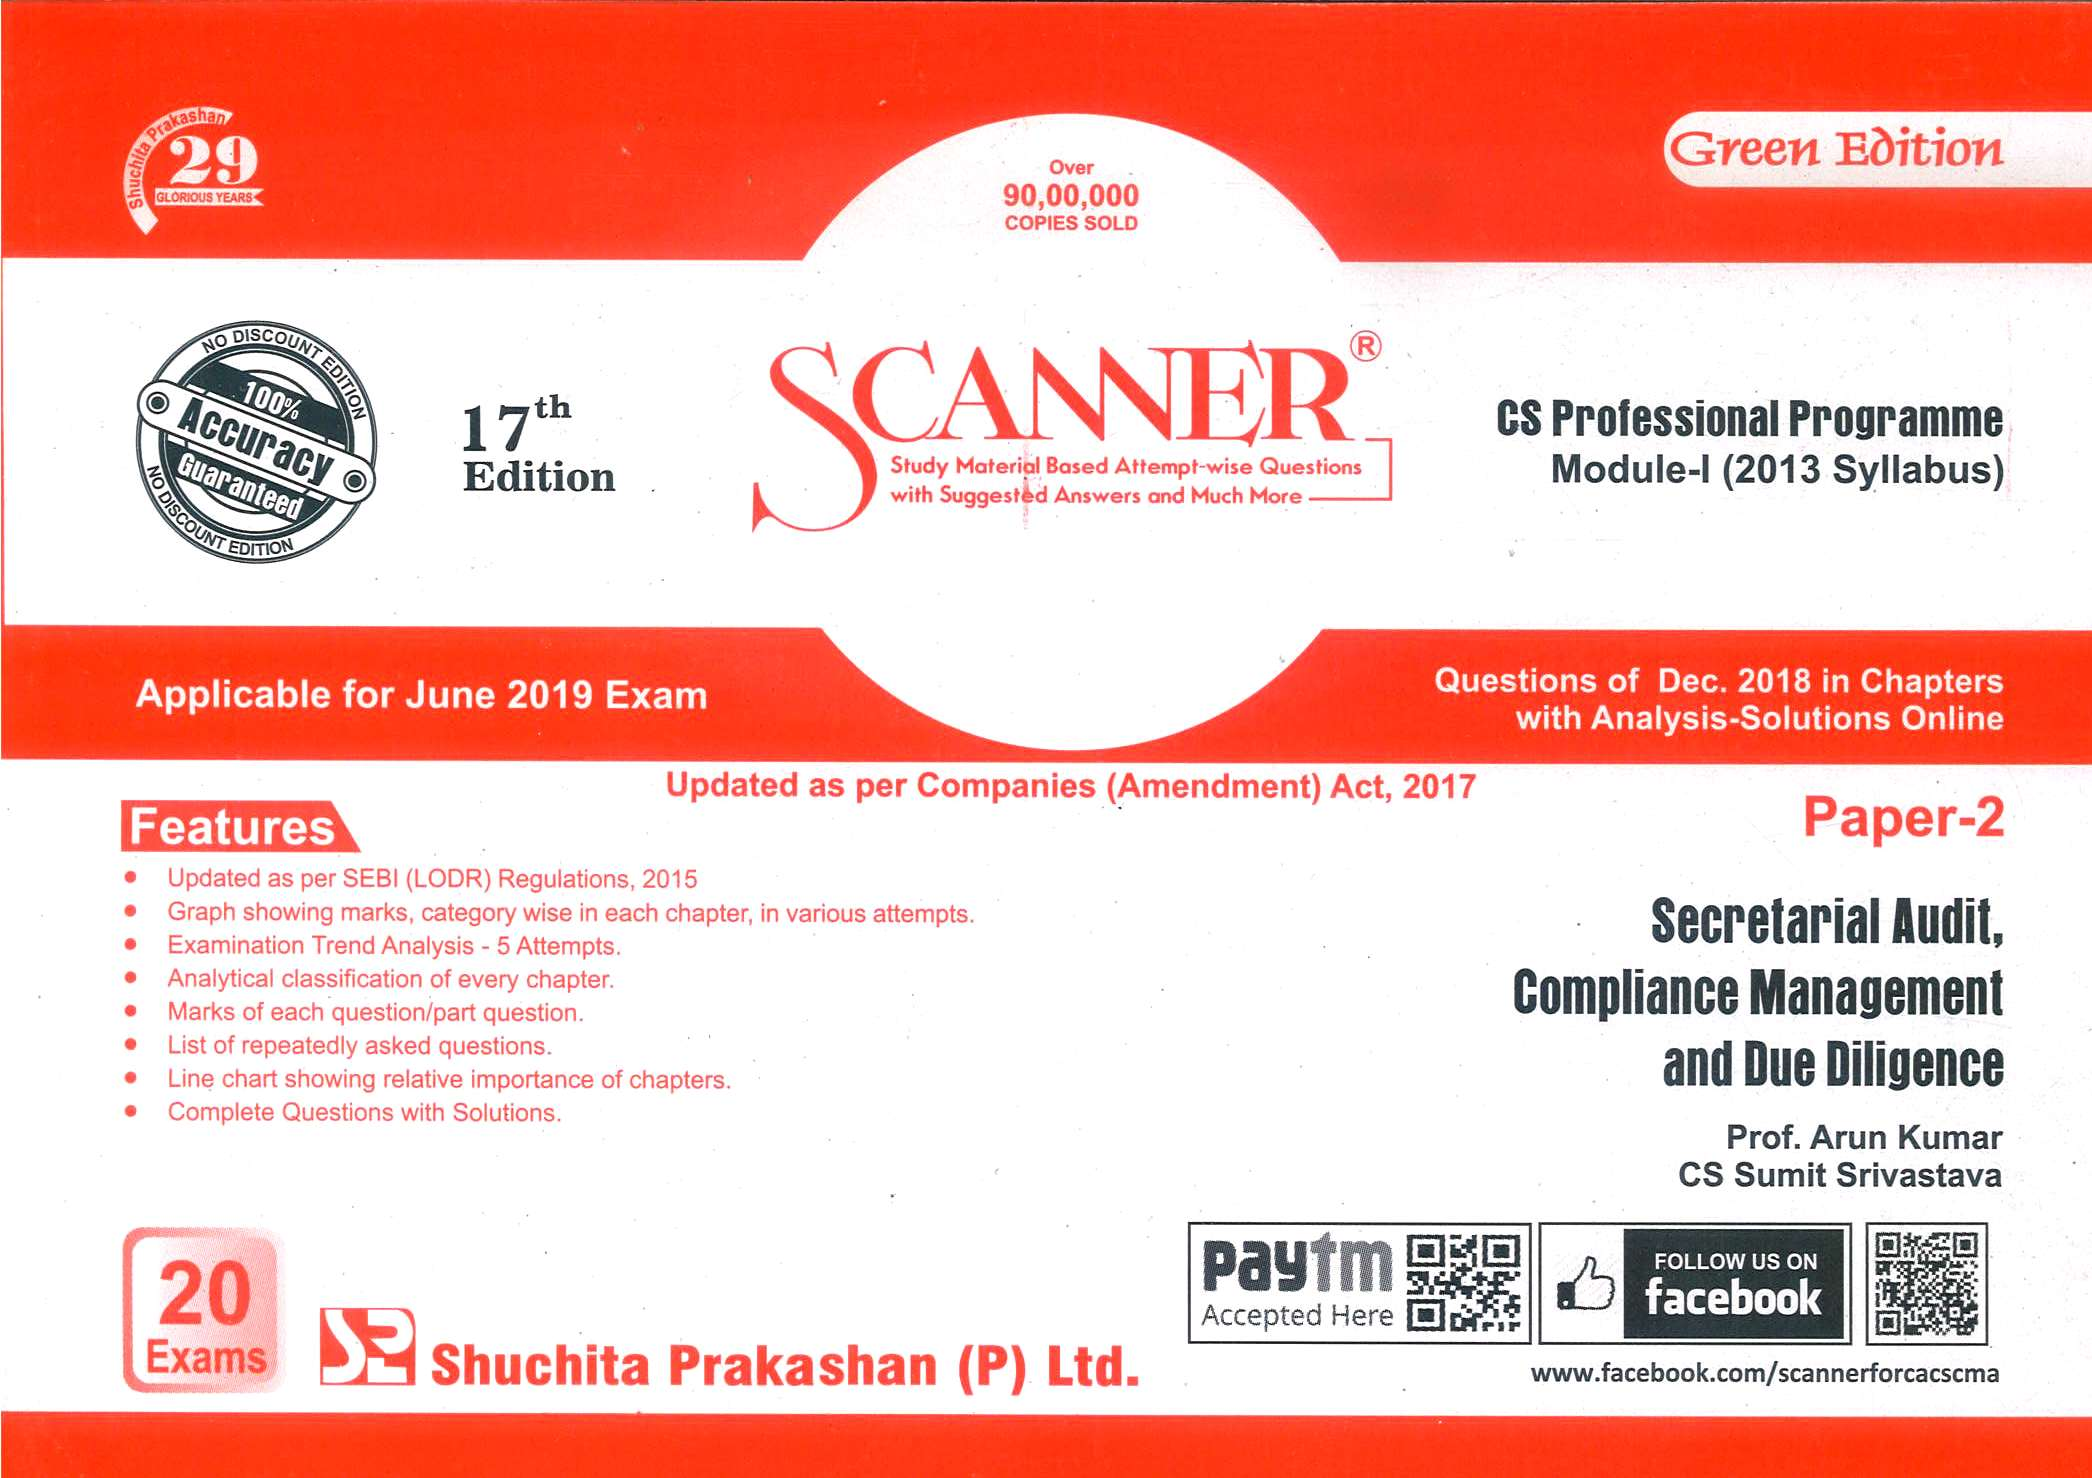 Shuchita Secretarial Audit, Compliance Management & Due Diligence Solved Scanner for June 2019 Exam for CS Professional Programme Module-I (New Syllabus) Paper 2 Green Edition by Prof. Arun Kumar and CS Sumit Srivastave (Shuchita Prakashan) Edition 17th 2018